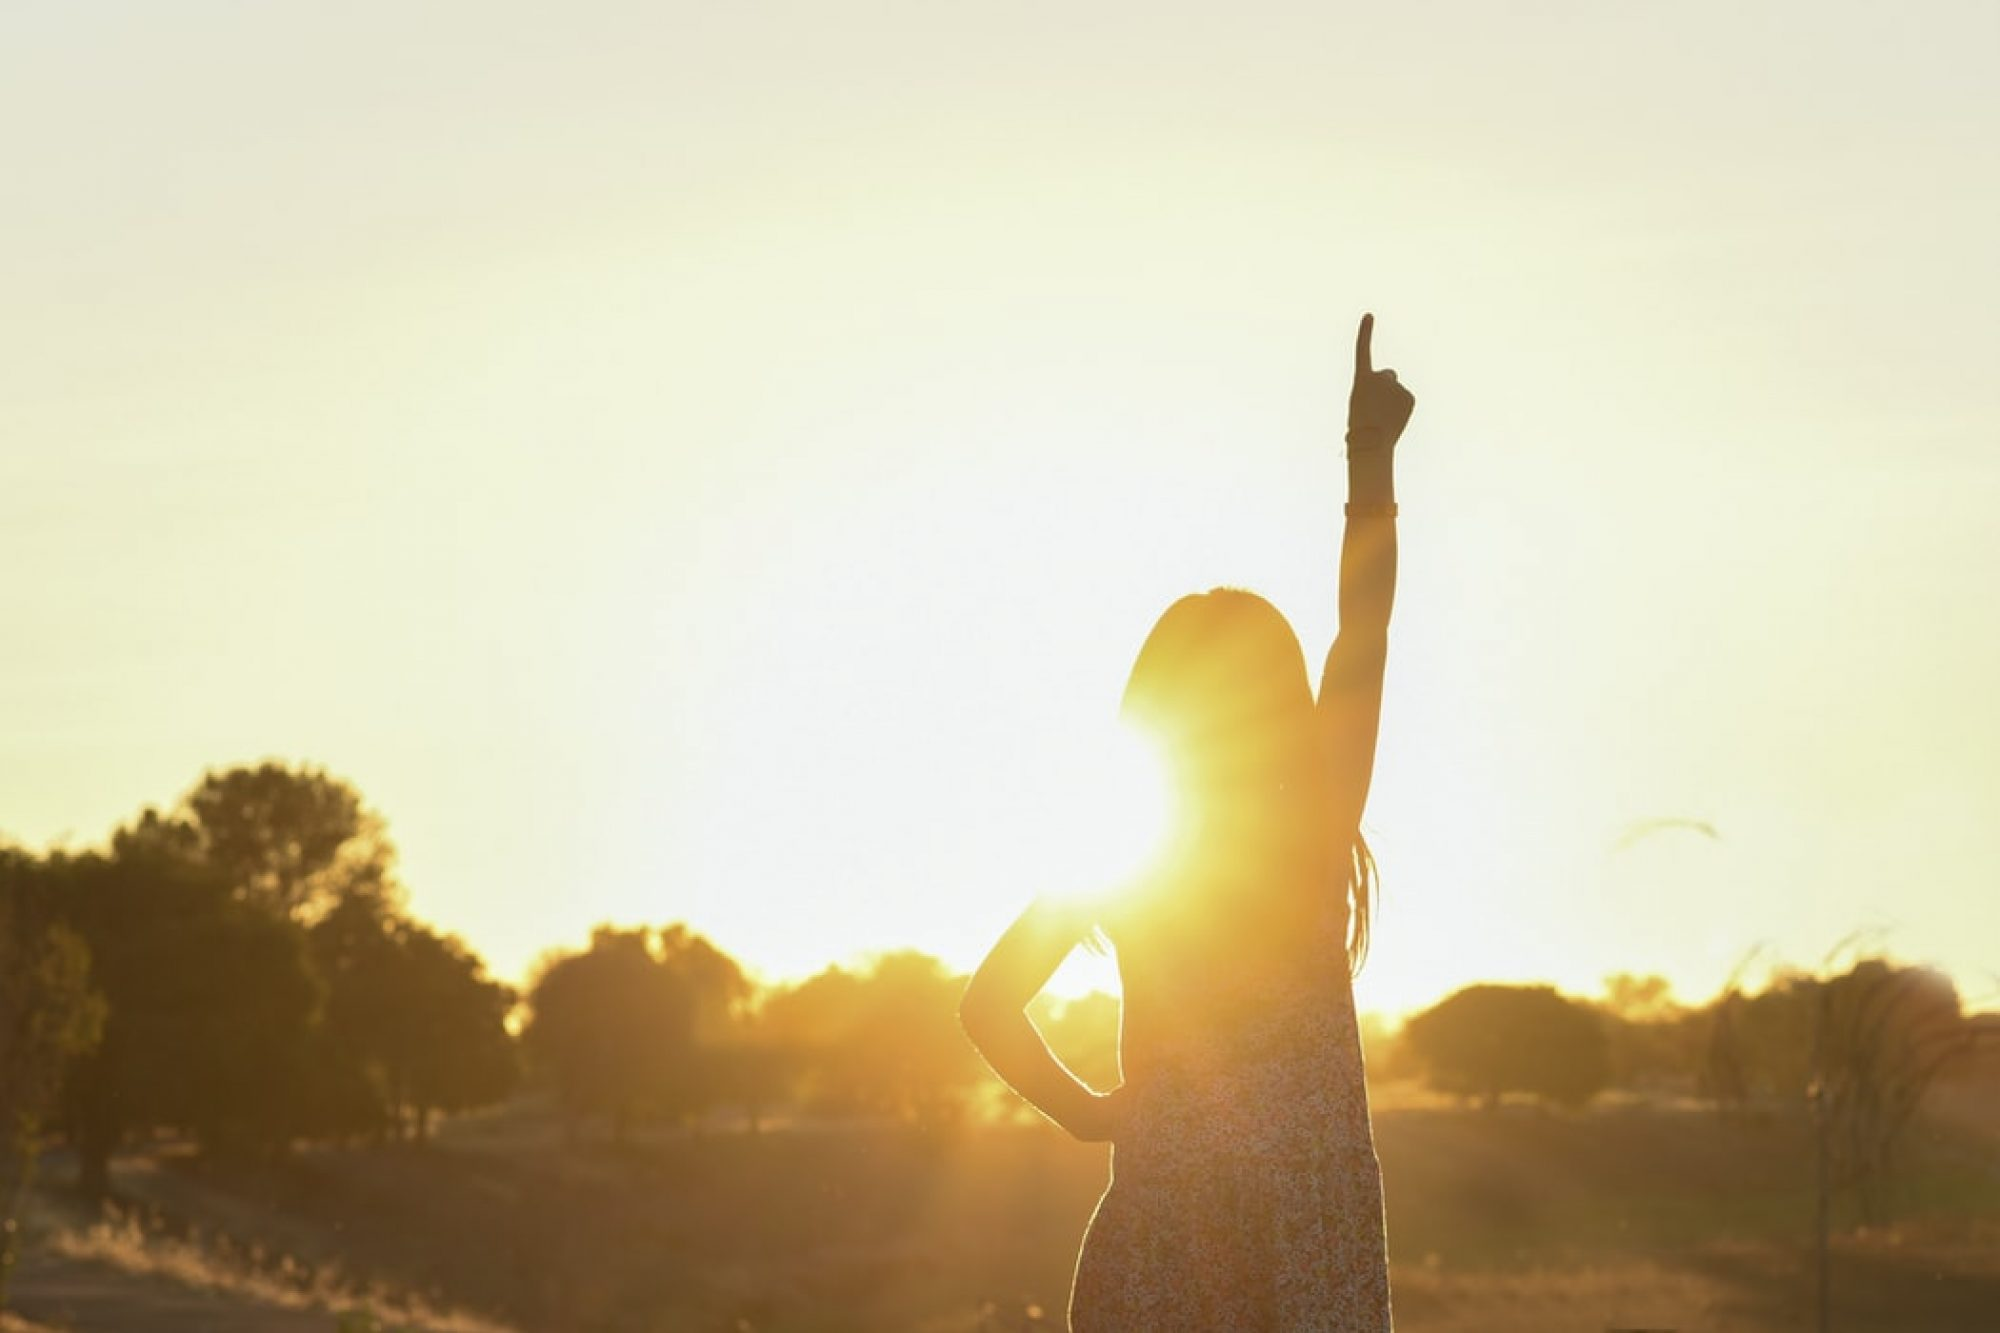 A girl in front of the sun pointing up